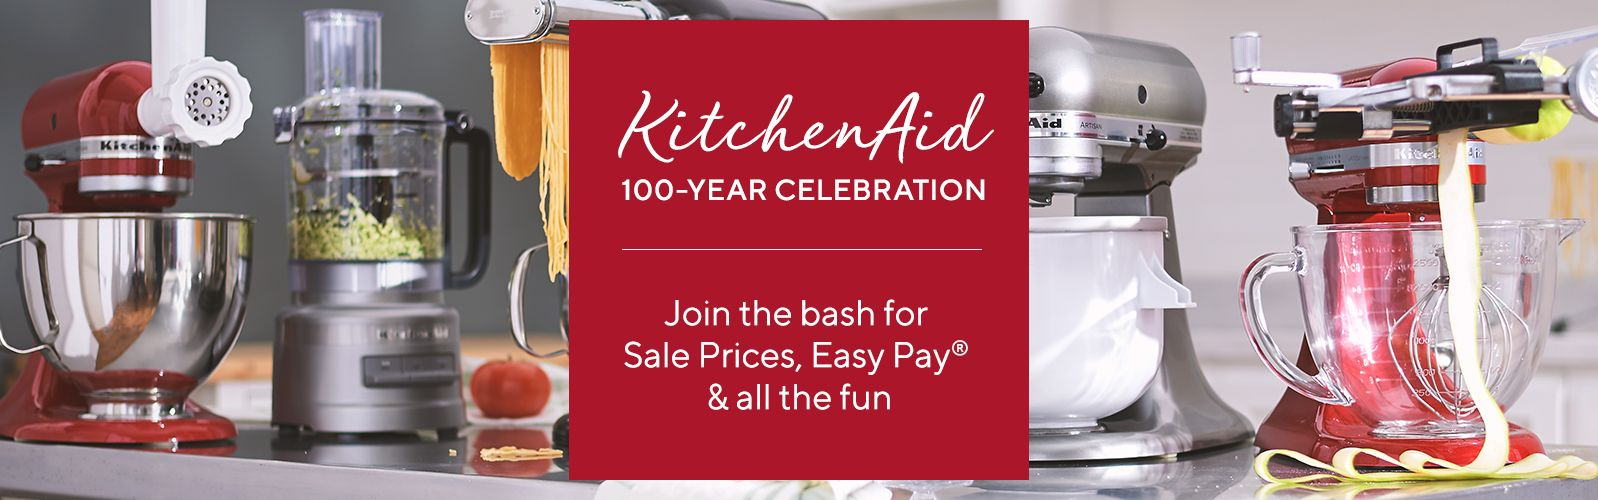 qvc.com shopping kitchen hot water for sink cookware baking supplies more food qvc com kitchenaid 100 year celebration join the bash sale prices